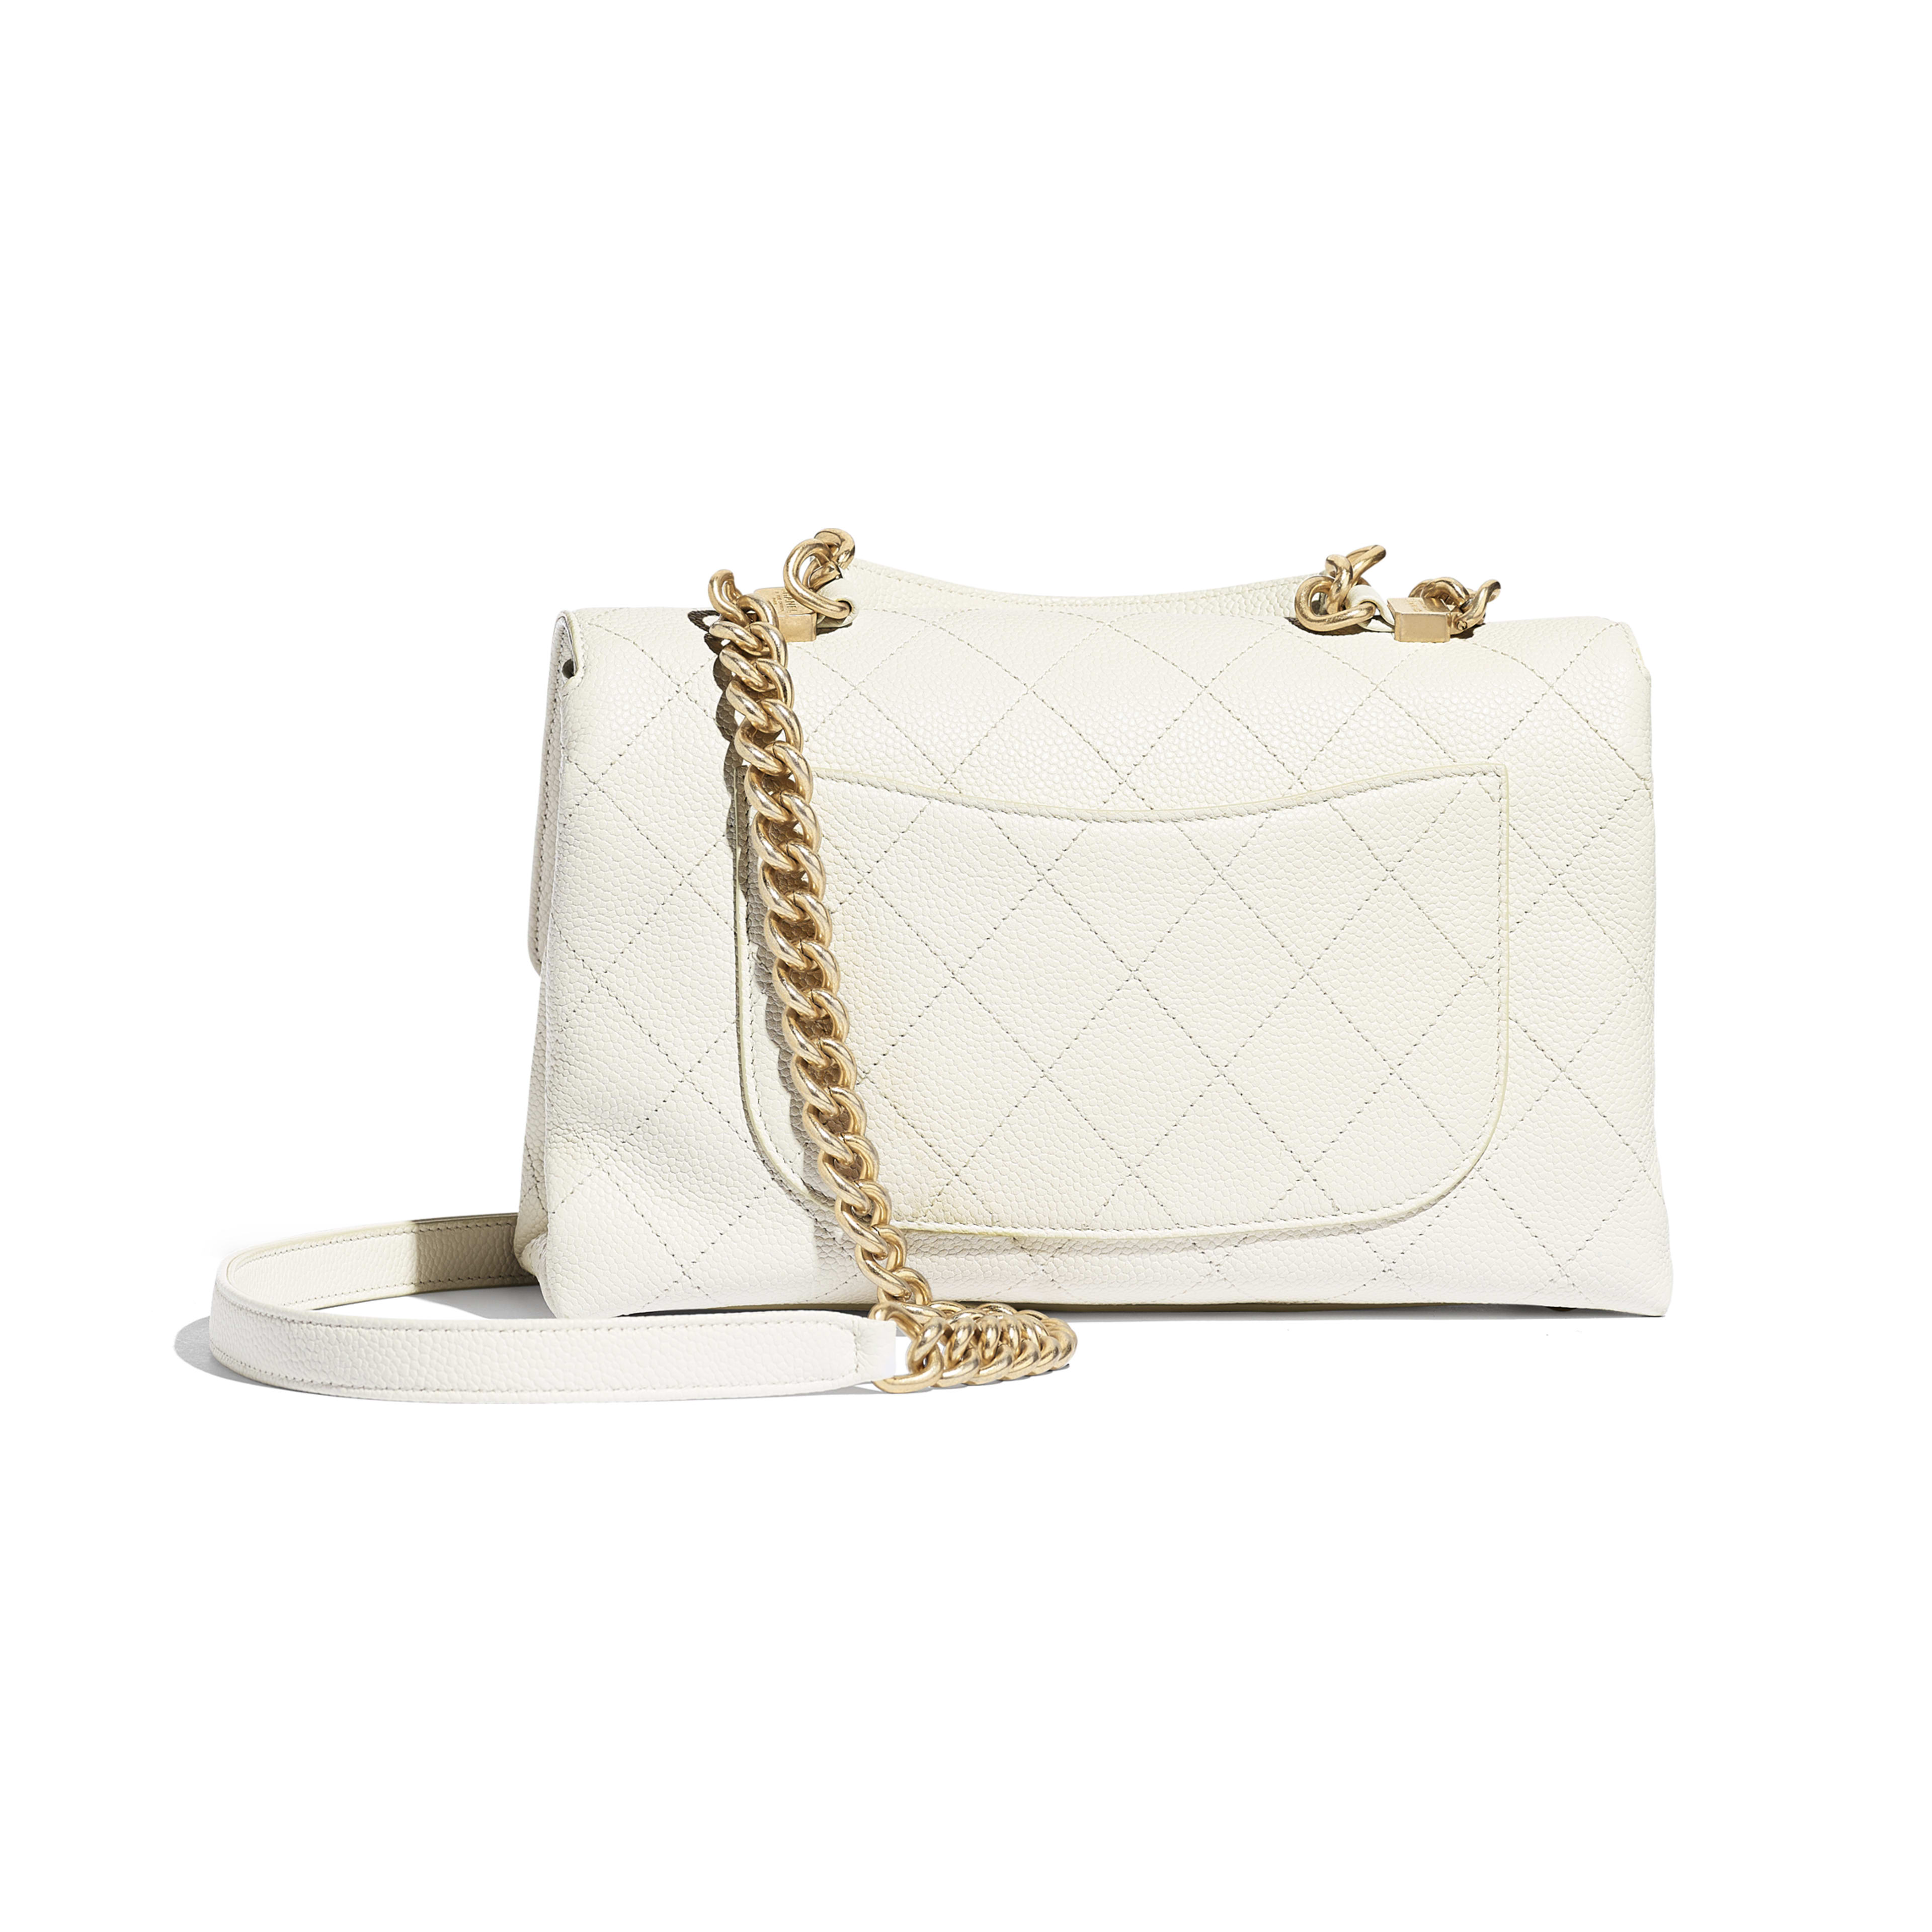 Flap Bag - White - Grained Calfskin & Gold-Tone Metal - Alternative view - see full sized version